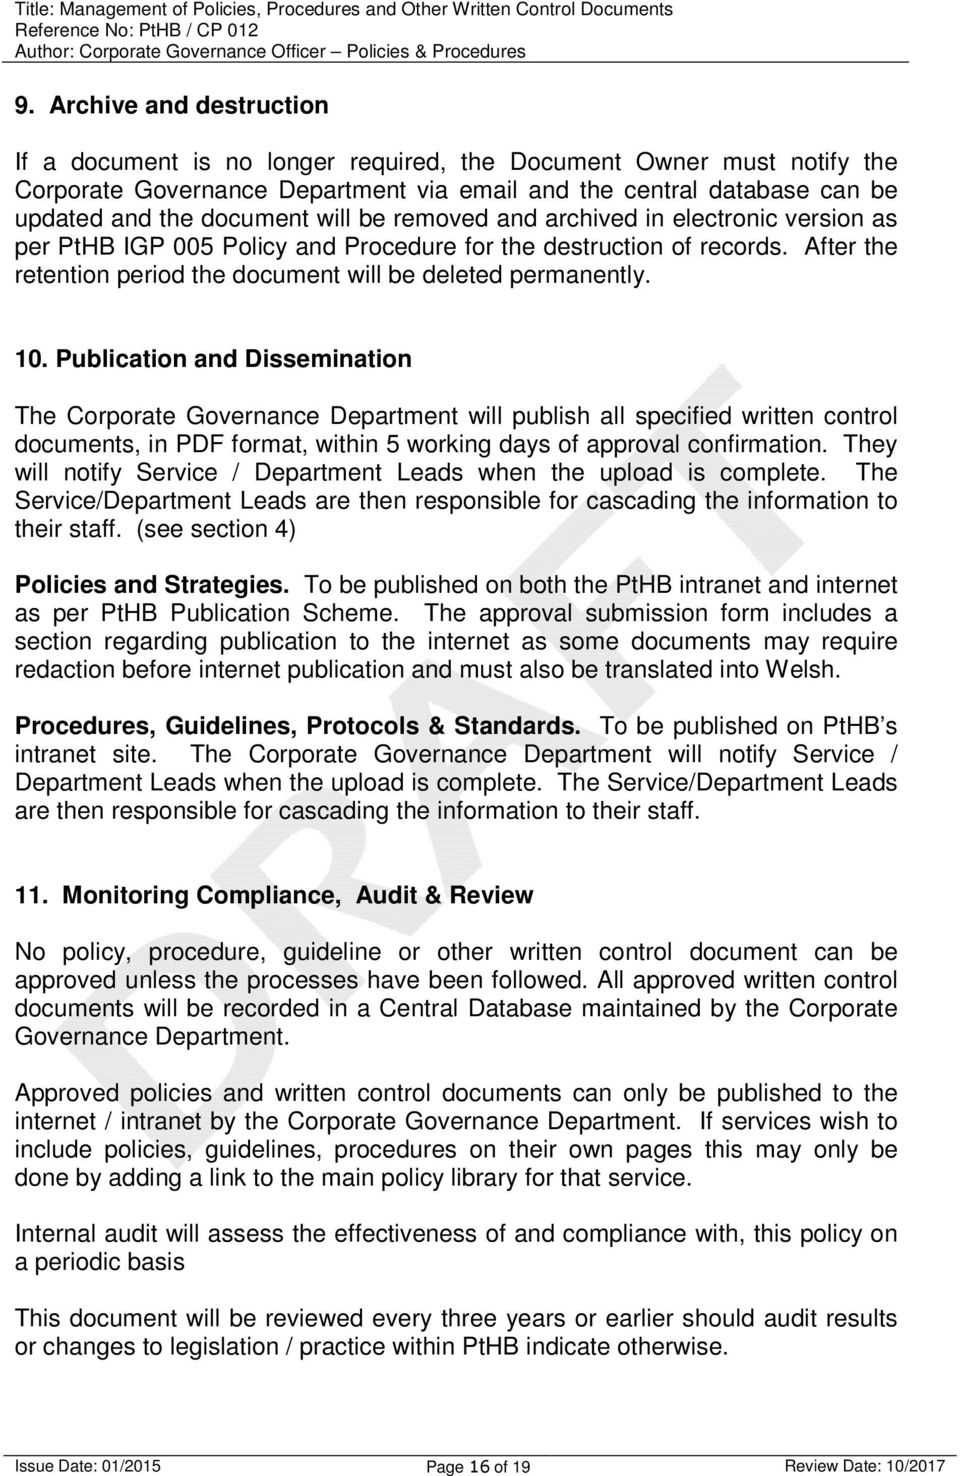 MANAGEMENT OF POLICIES, PROCEDURES AND OTHER WRITTEN CONTROL